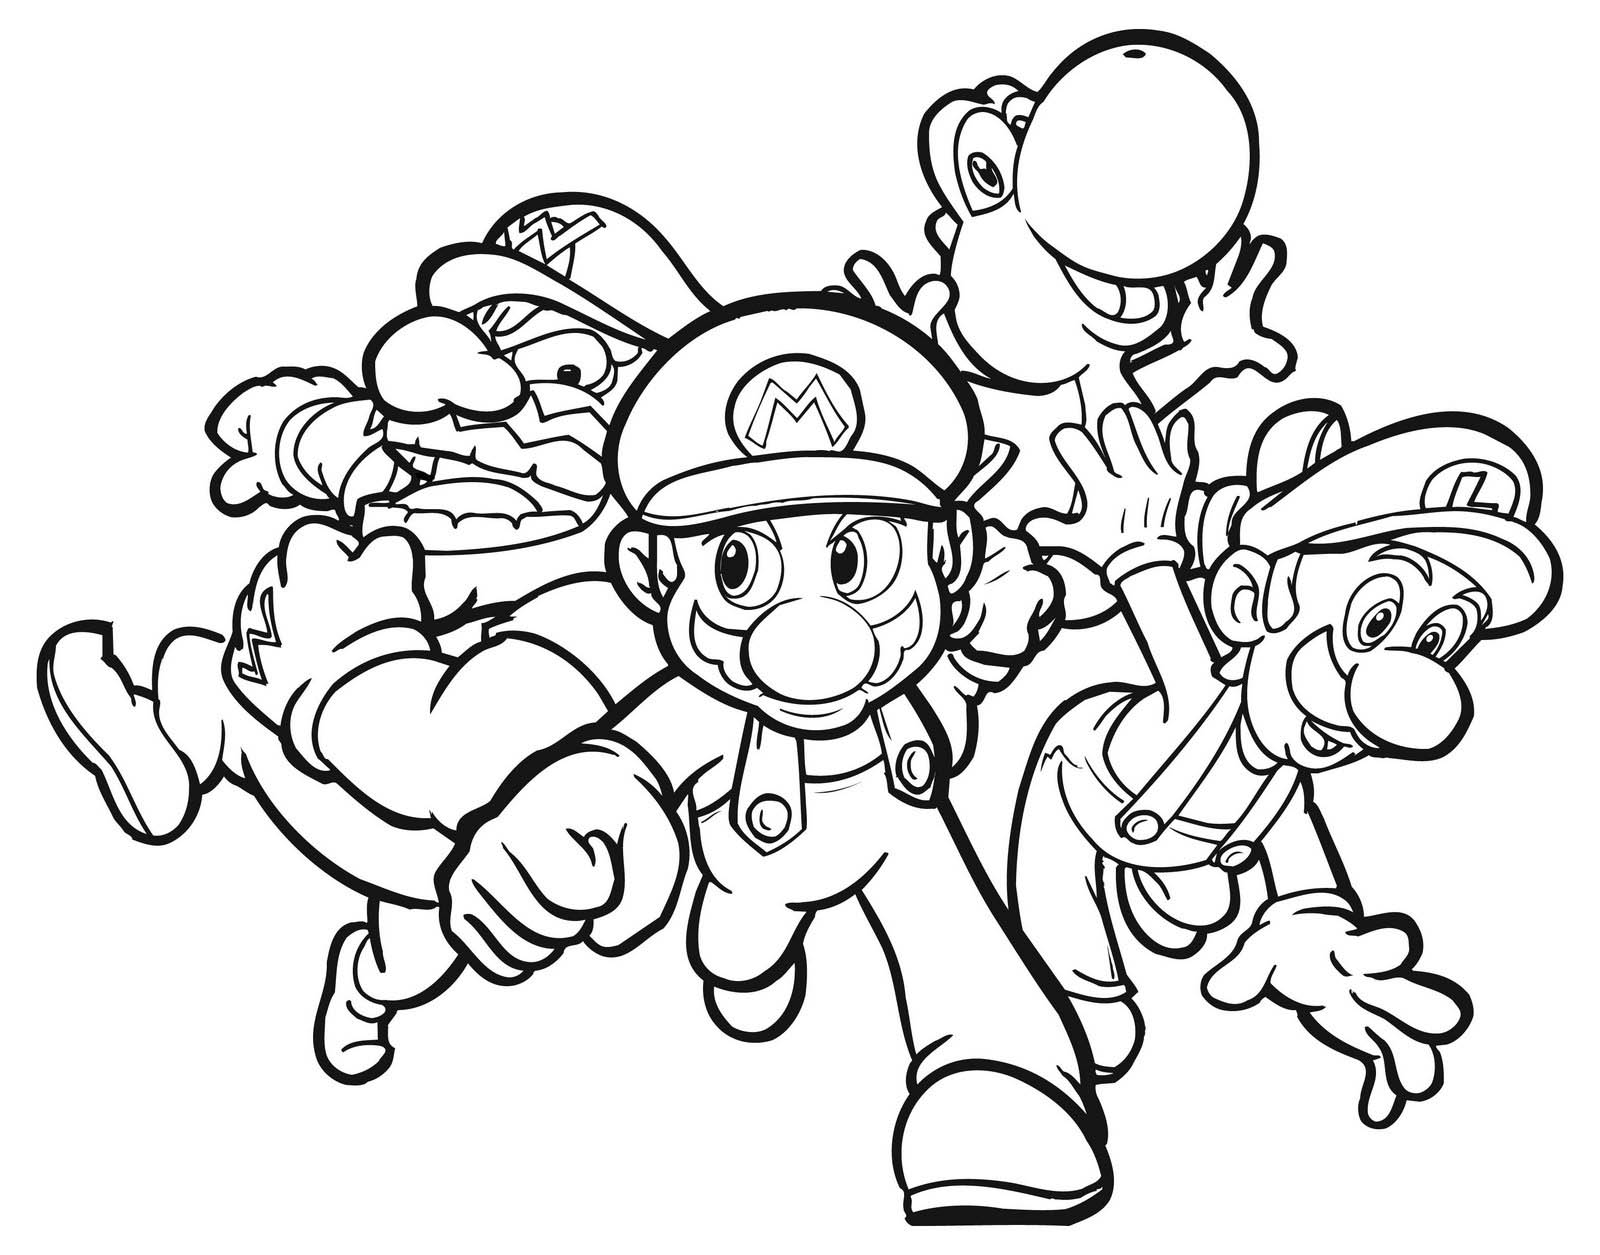 mario bros coloring pages - Cloring Sheets